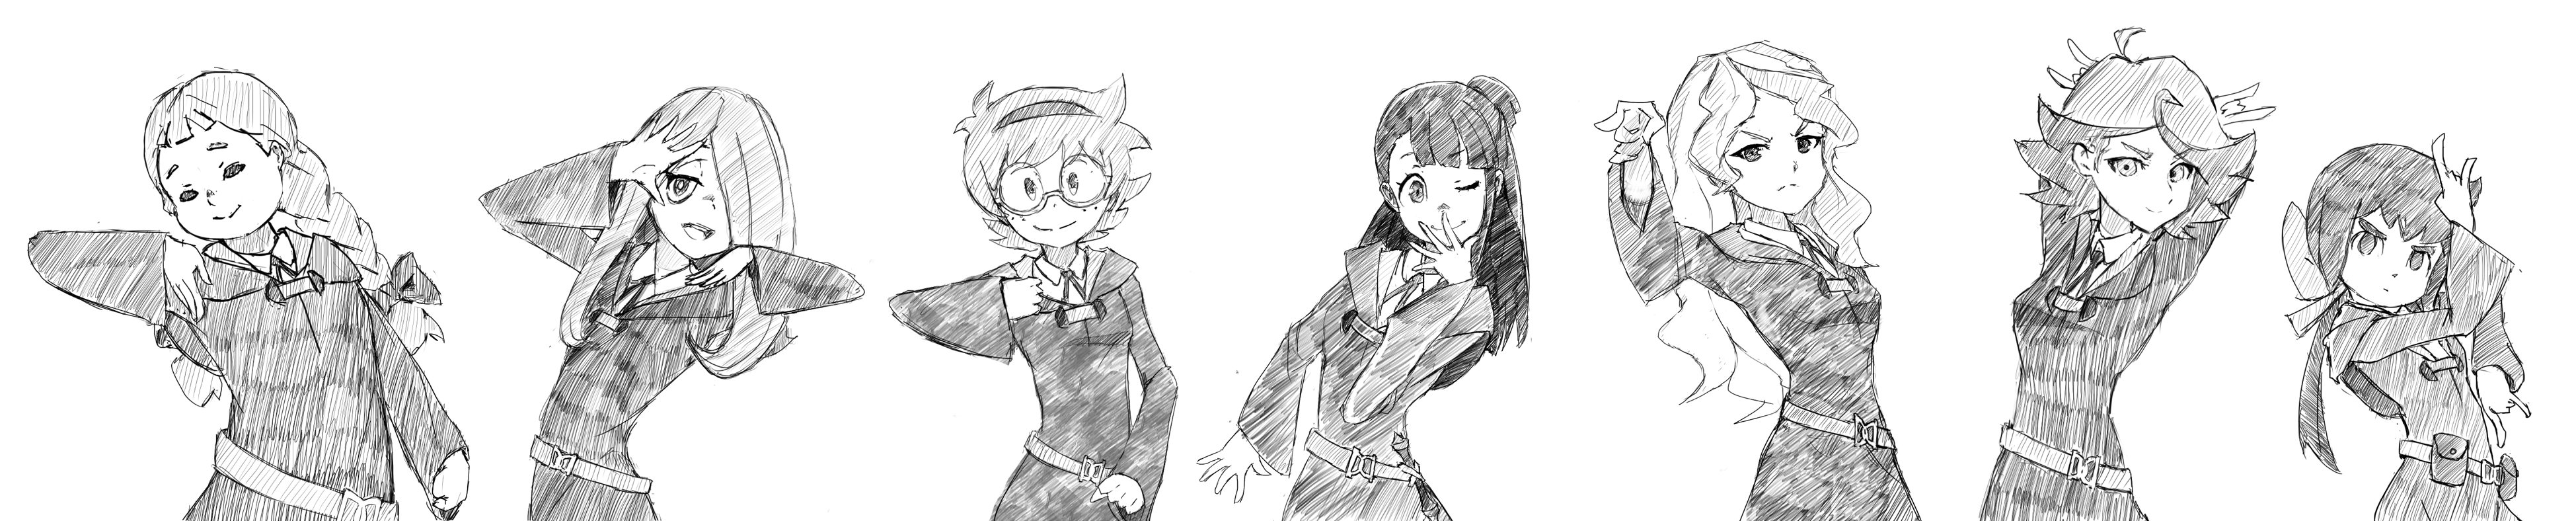 LWA characters doing poses from Jojo's Bizarre Adventure!